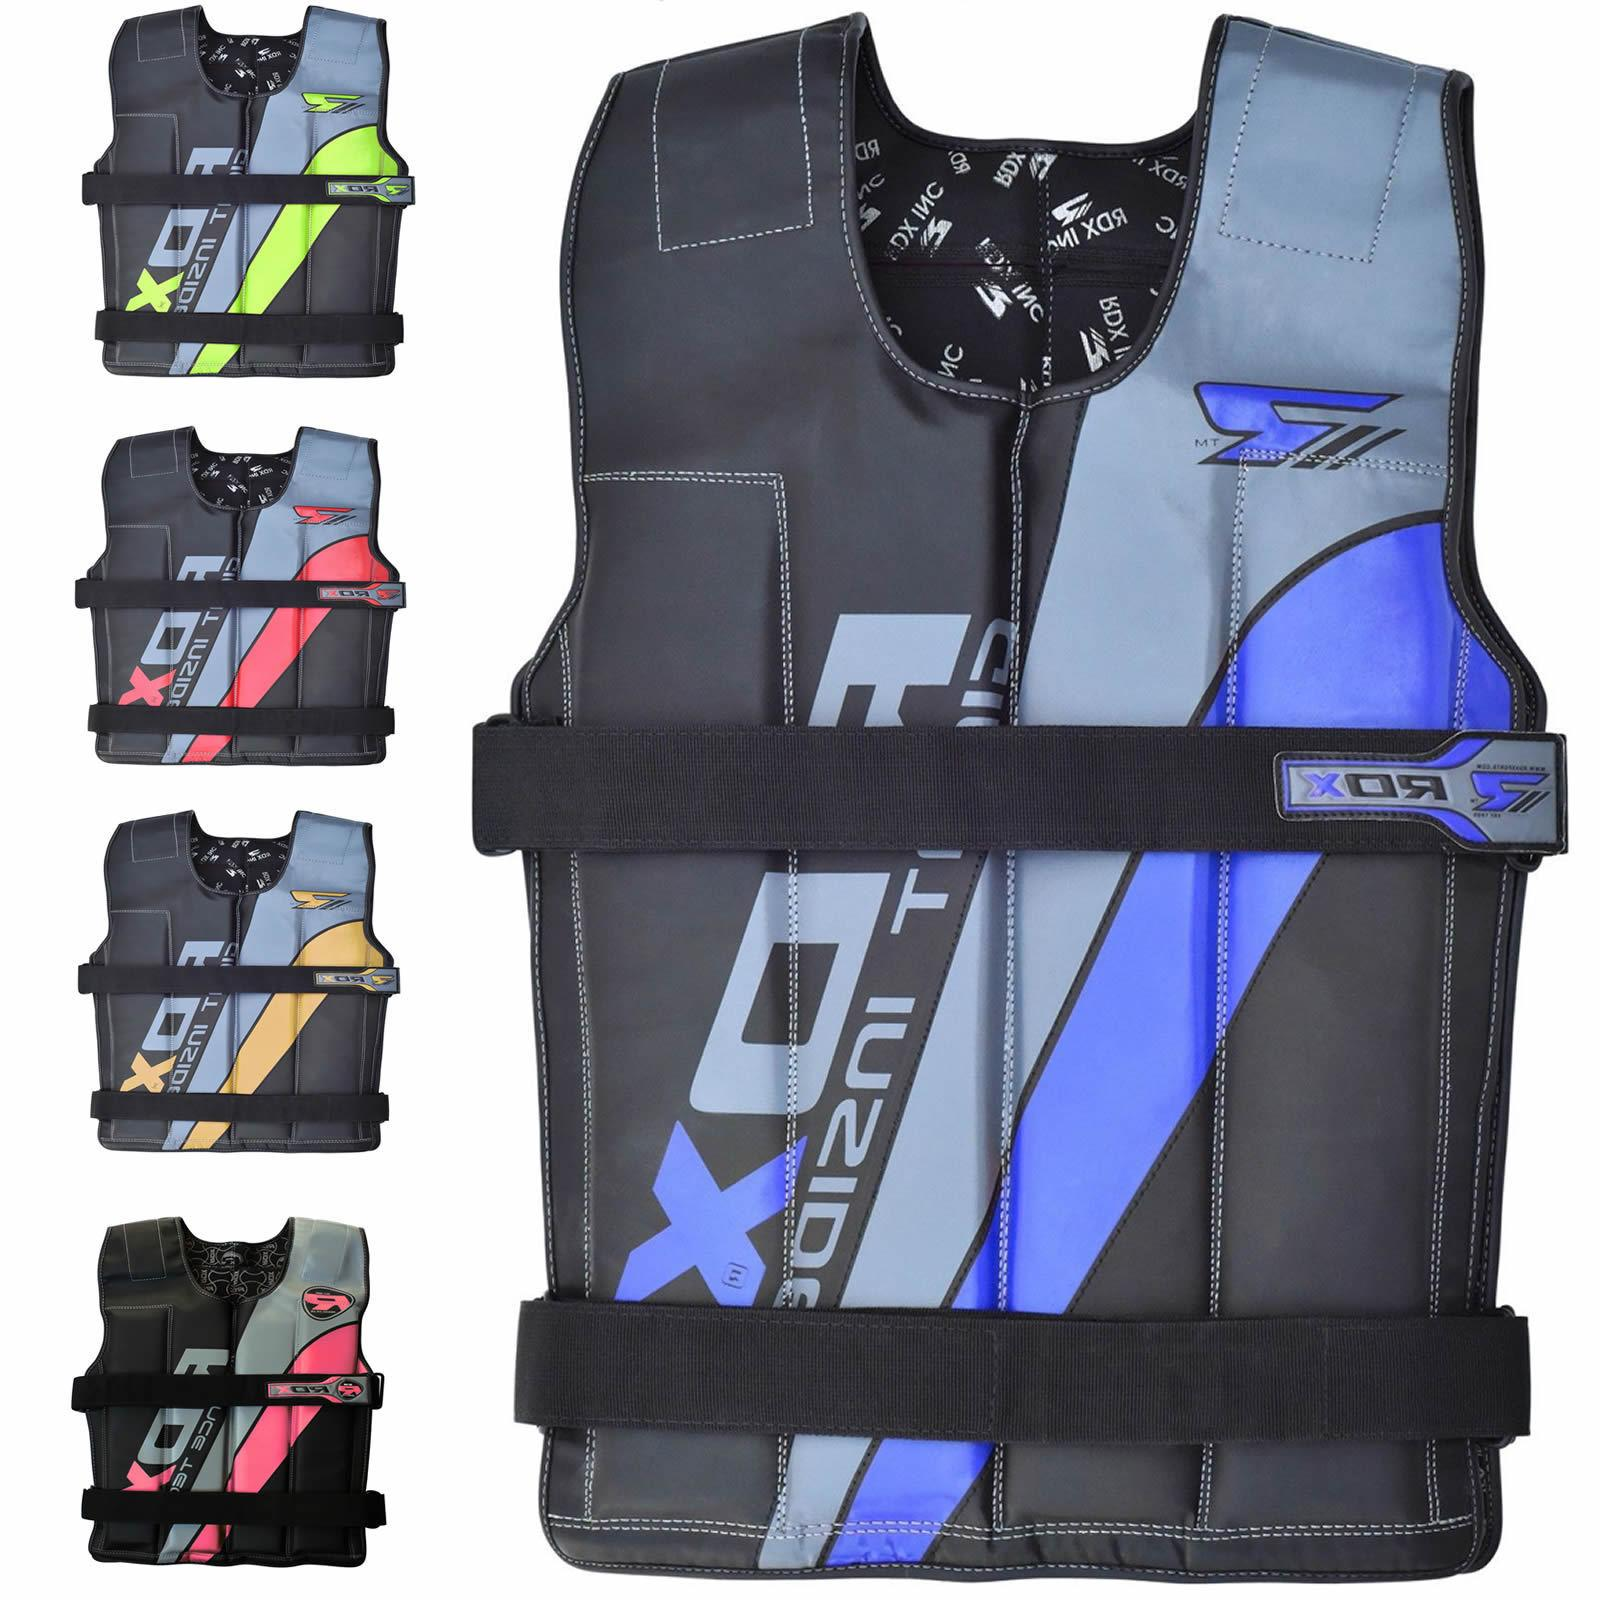 weighted weight vest adjustable training fitness workout